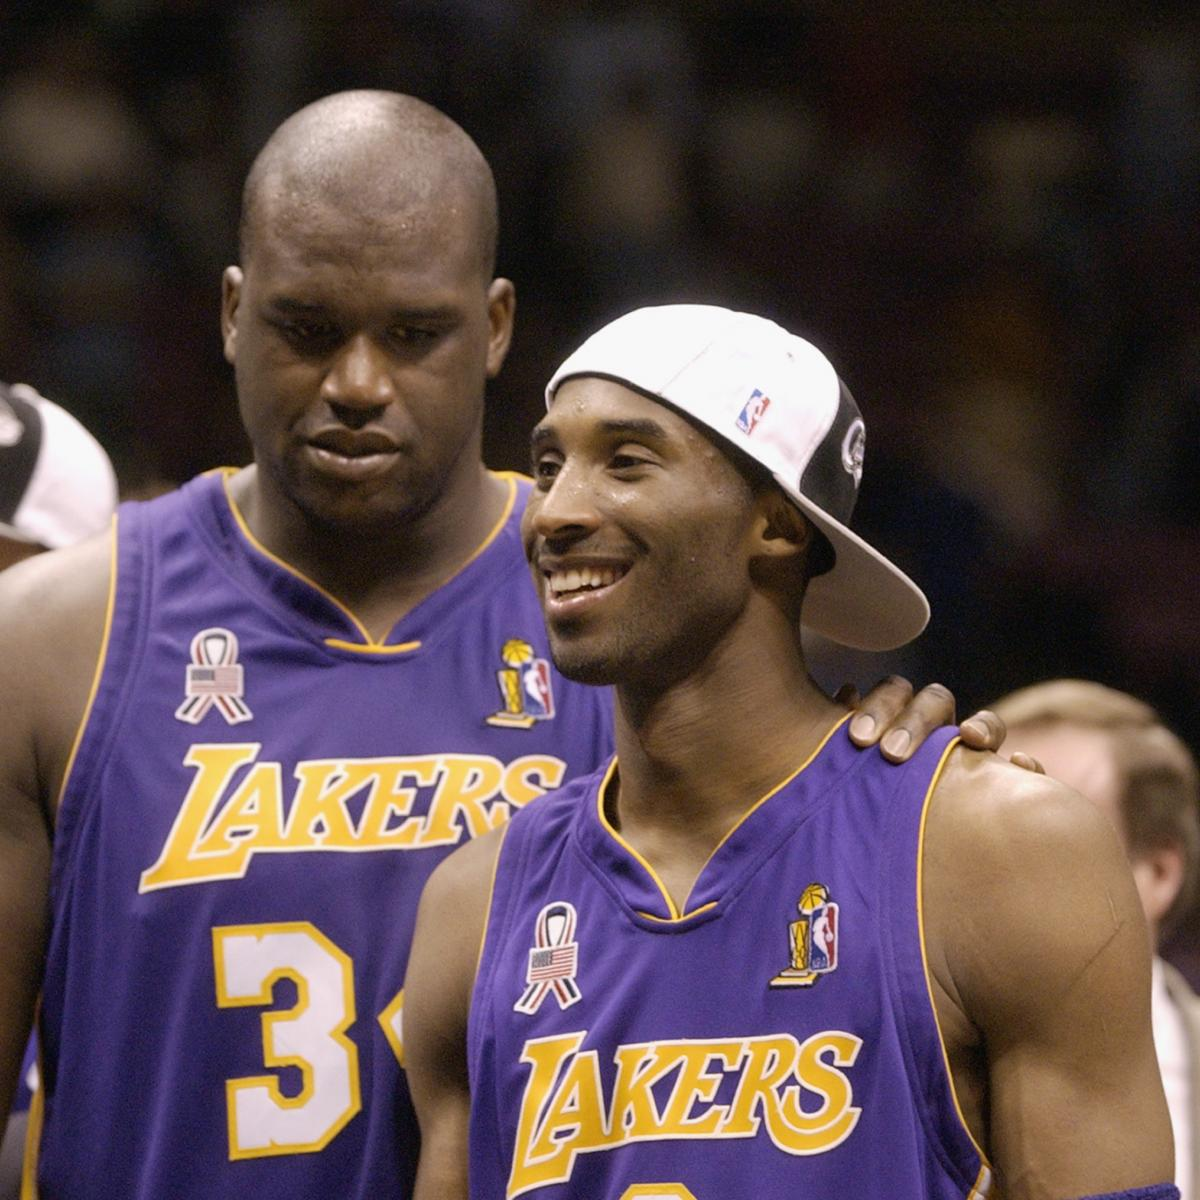 Ranking The Top 25 Players In La Lakers History Bleacher Report Latest News Videos And Highlights